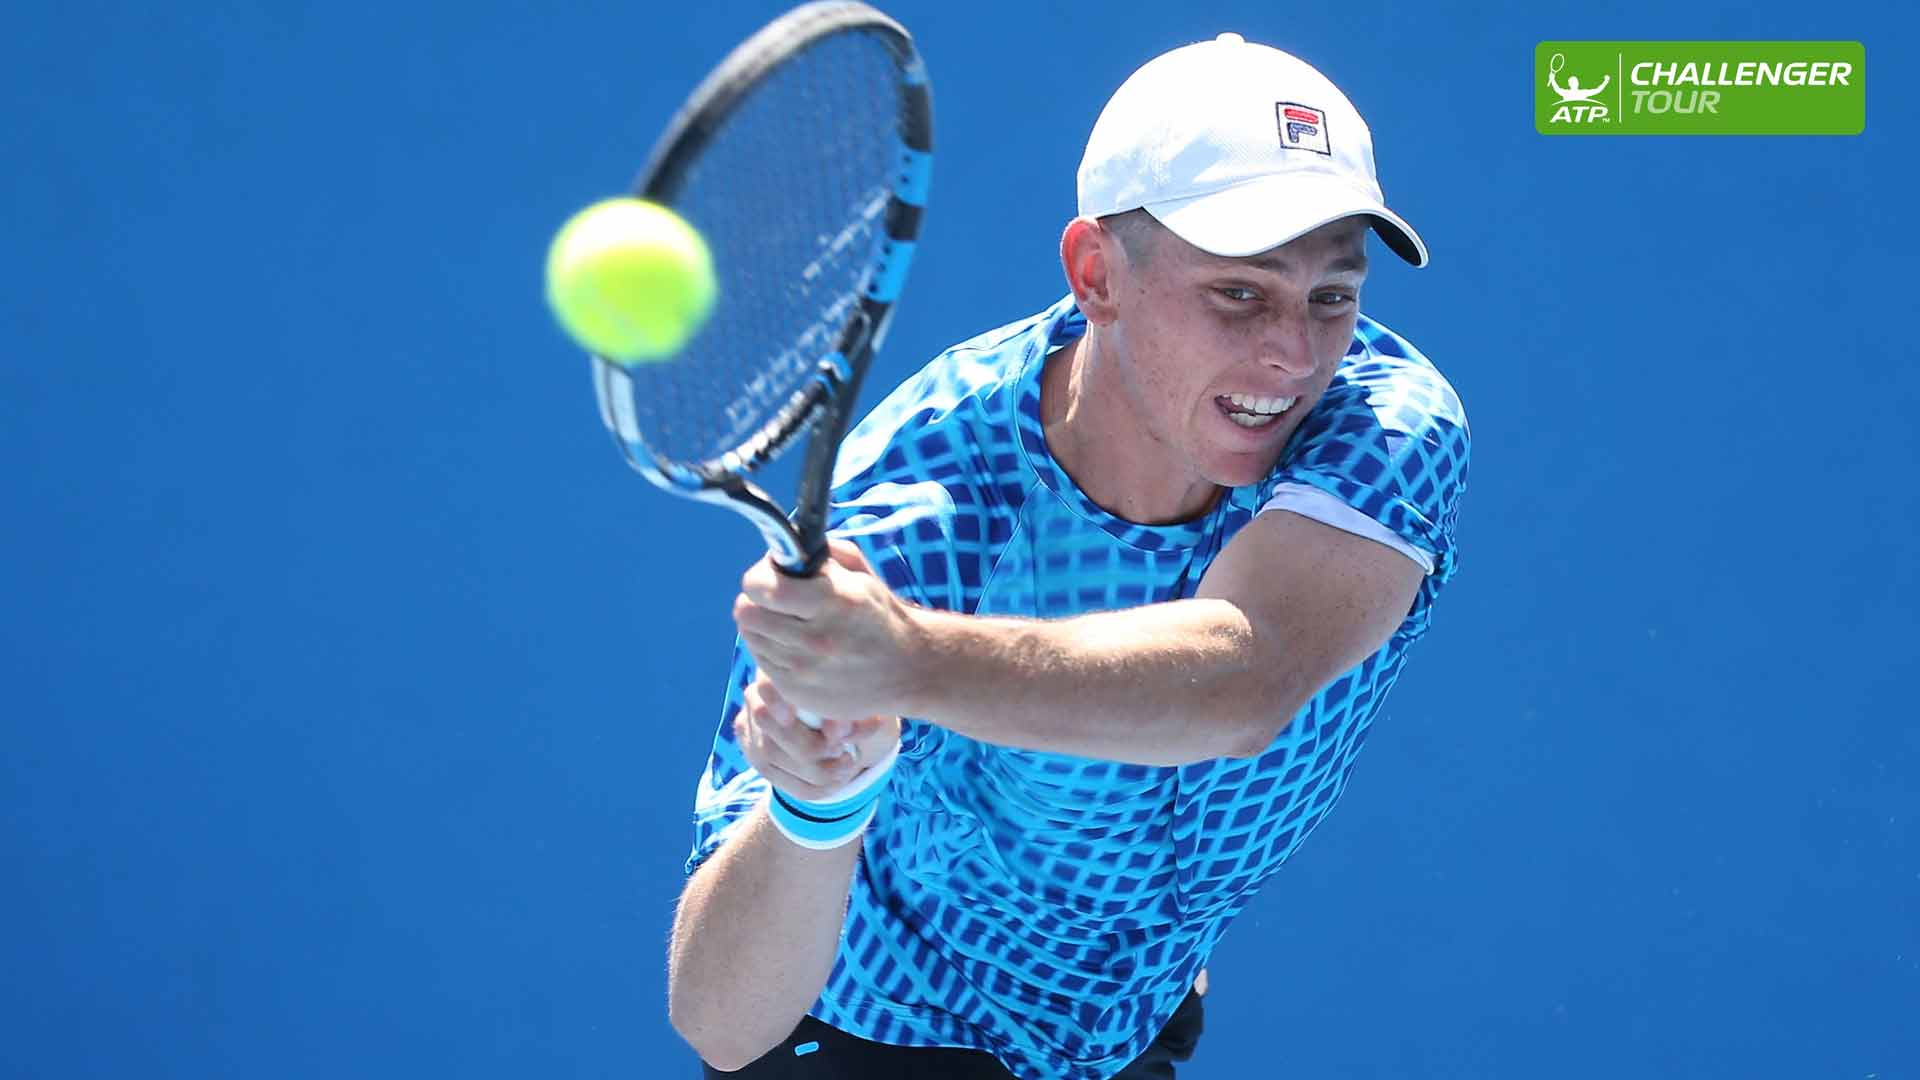 Andrew Whittington looks for another deep run in an ATP Challenger Tour event this week in Lexington.